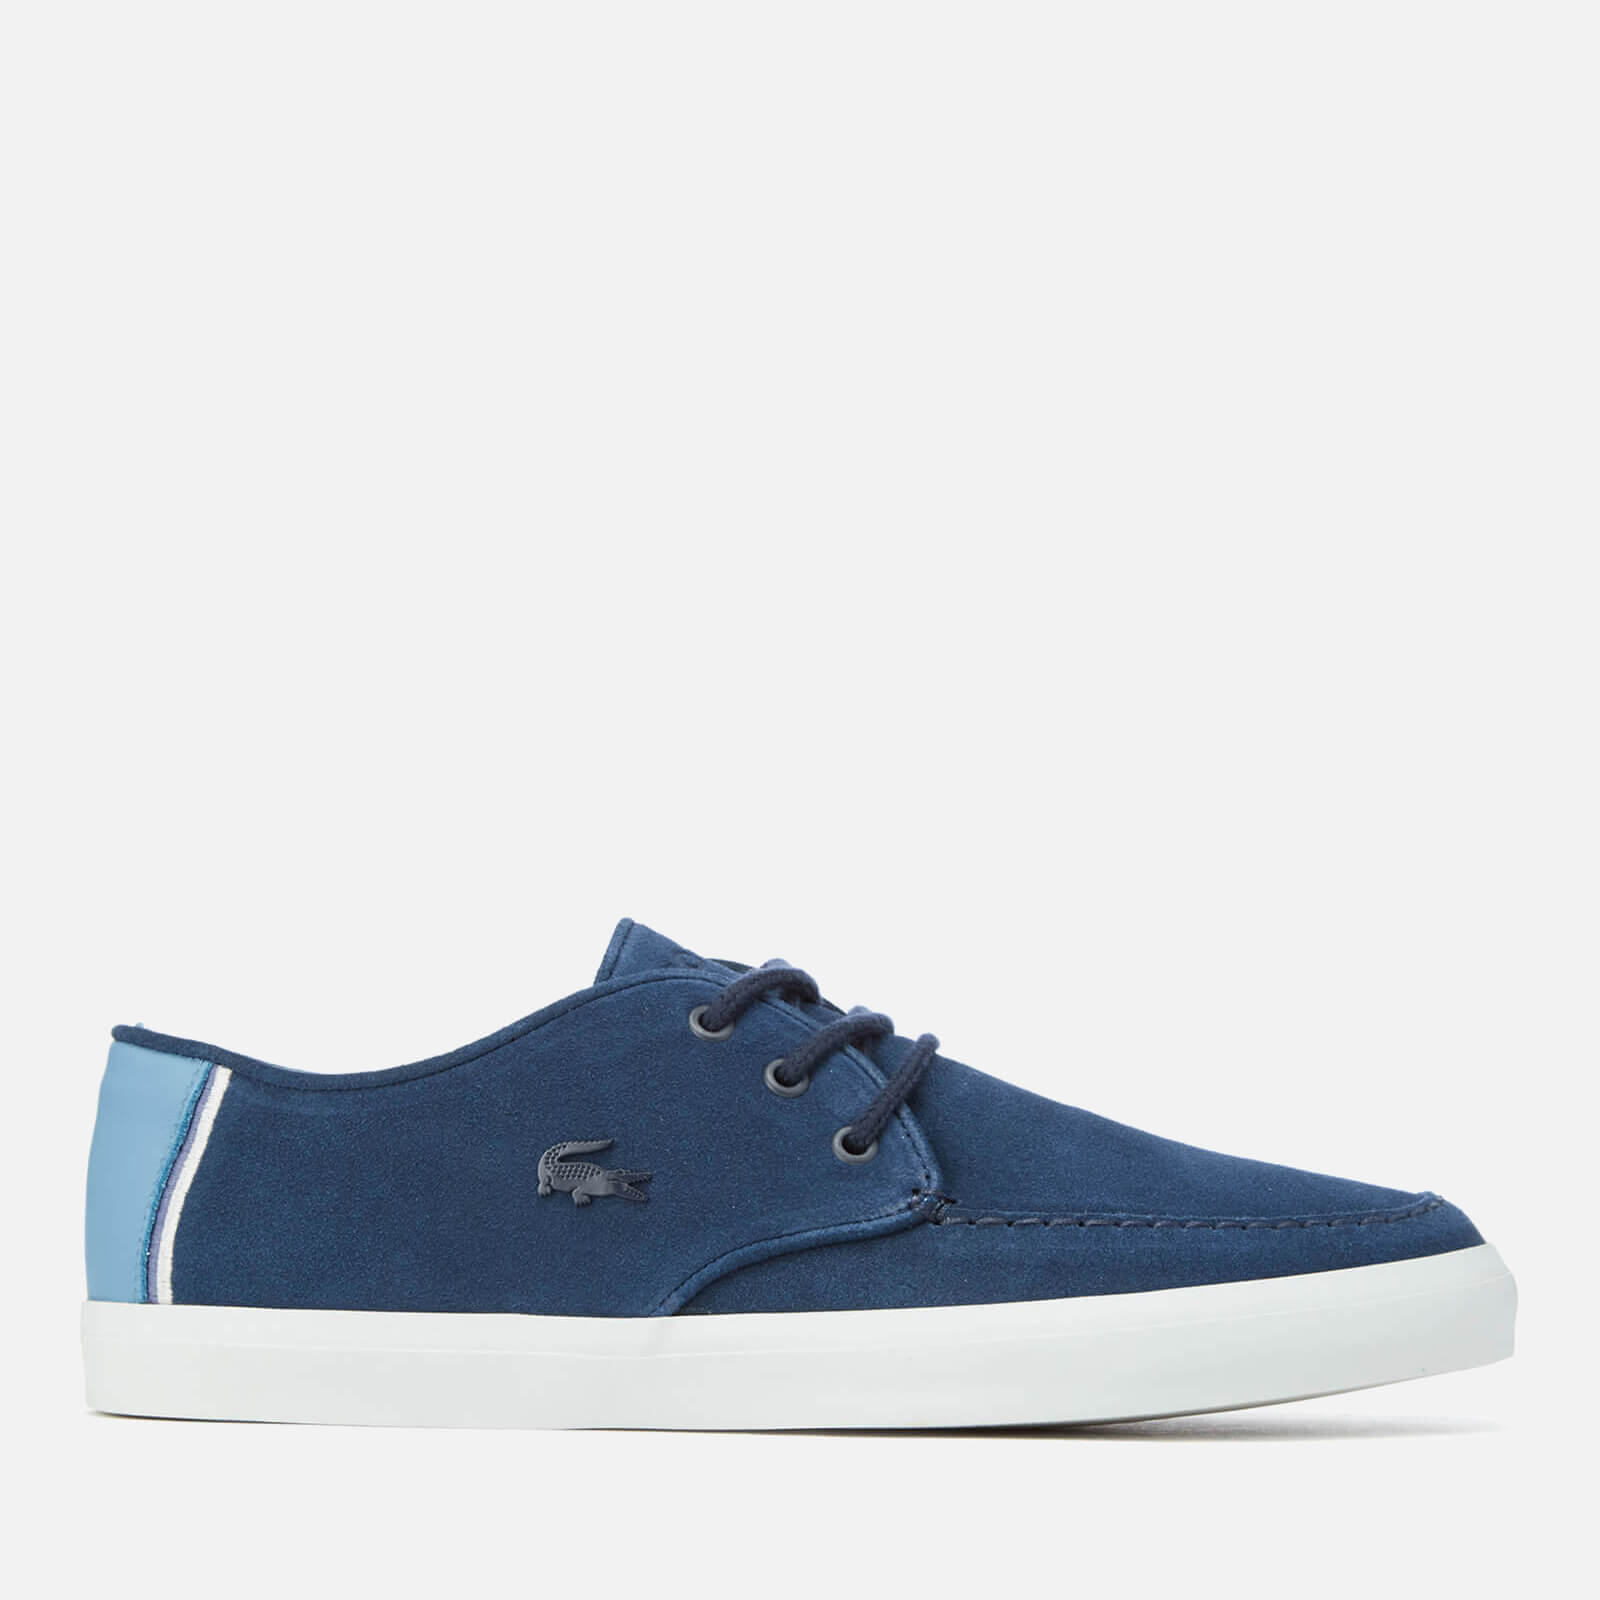 best sneakers 67a70 32a92 Lacoste Men s Sevrin 316 1 Suede Boat Shoes - Navy - Free UK Delivery over  £50